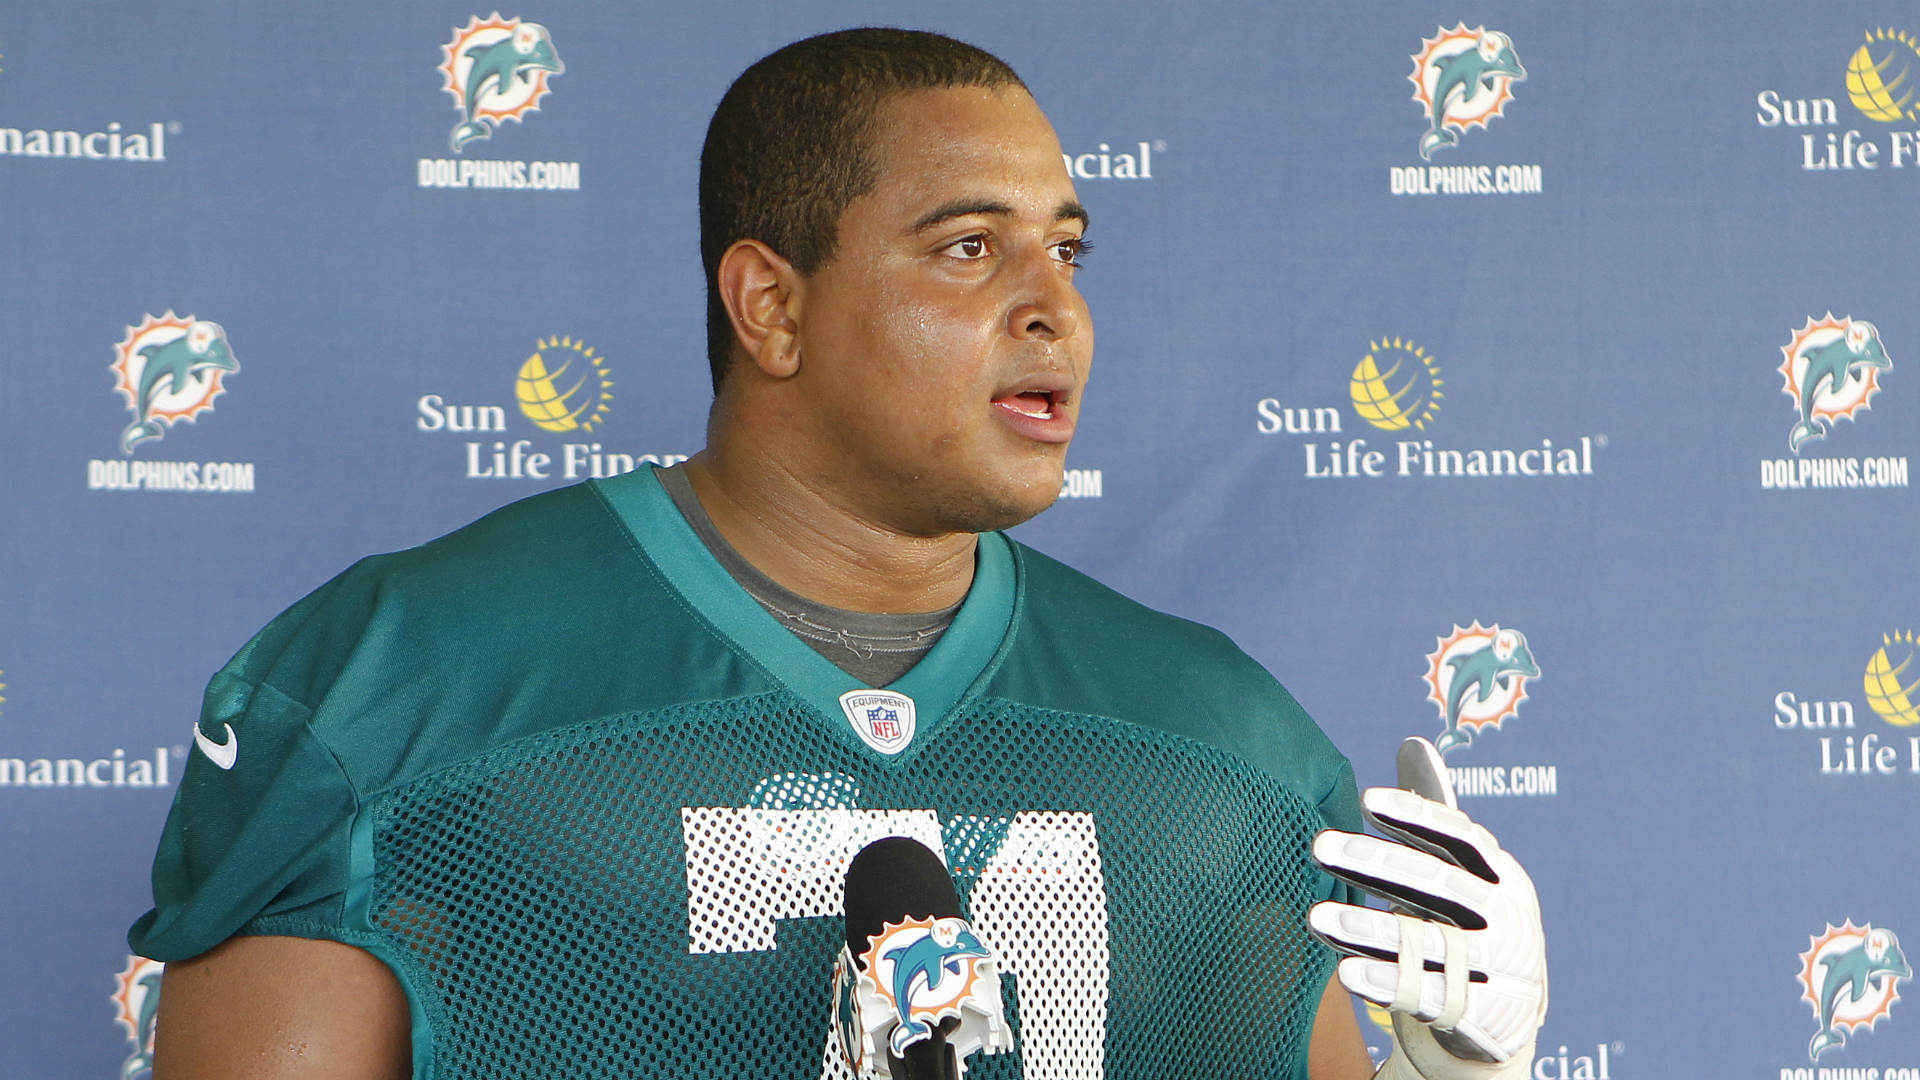 Jonathan Martin said 'high school will forever haunt me' in 2013 text to mother